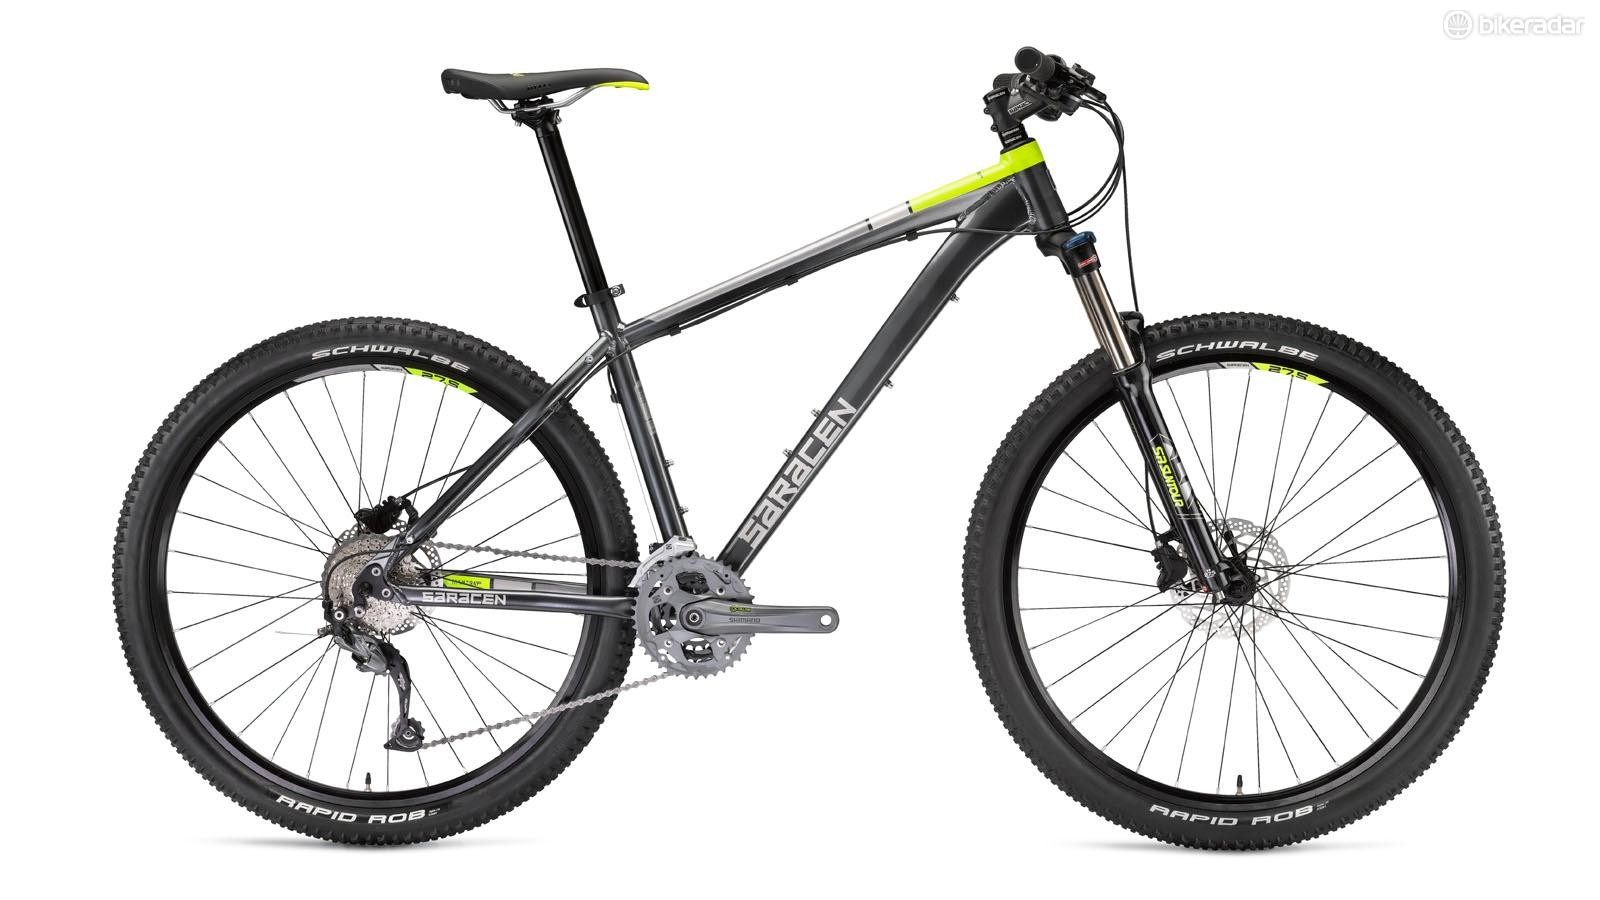 Saracen's Mantra Pro is built around an upgrade-worthy frame